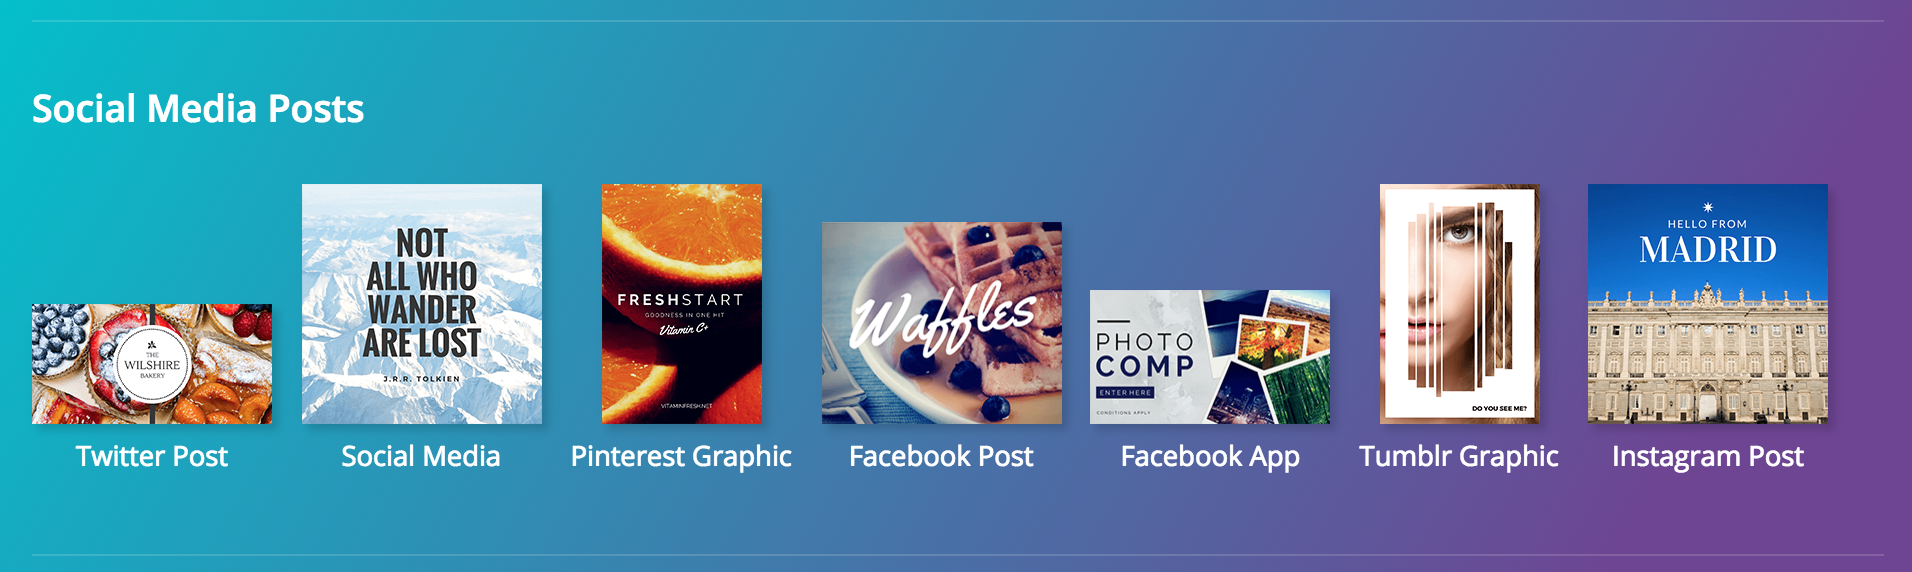 Canva Social Media Templates | YourWriterPlatform.com